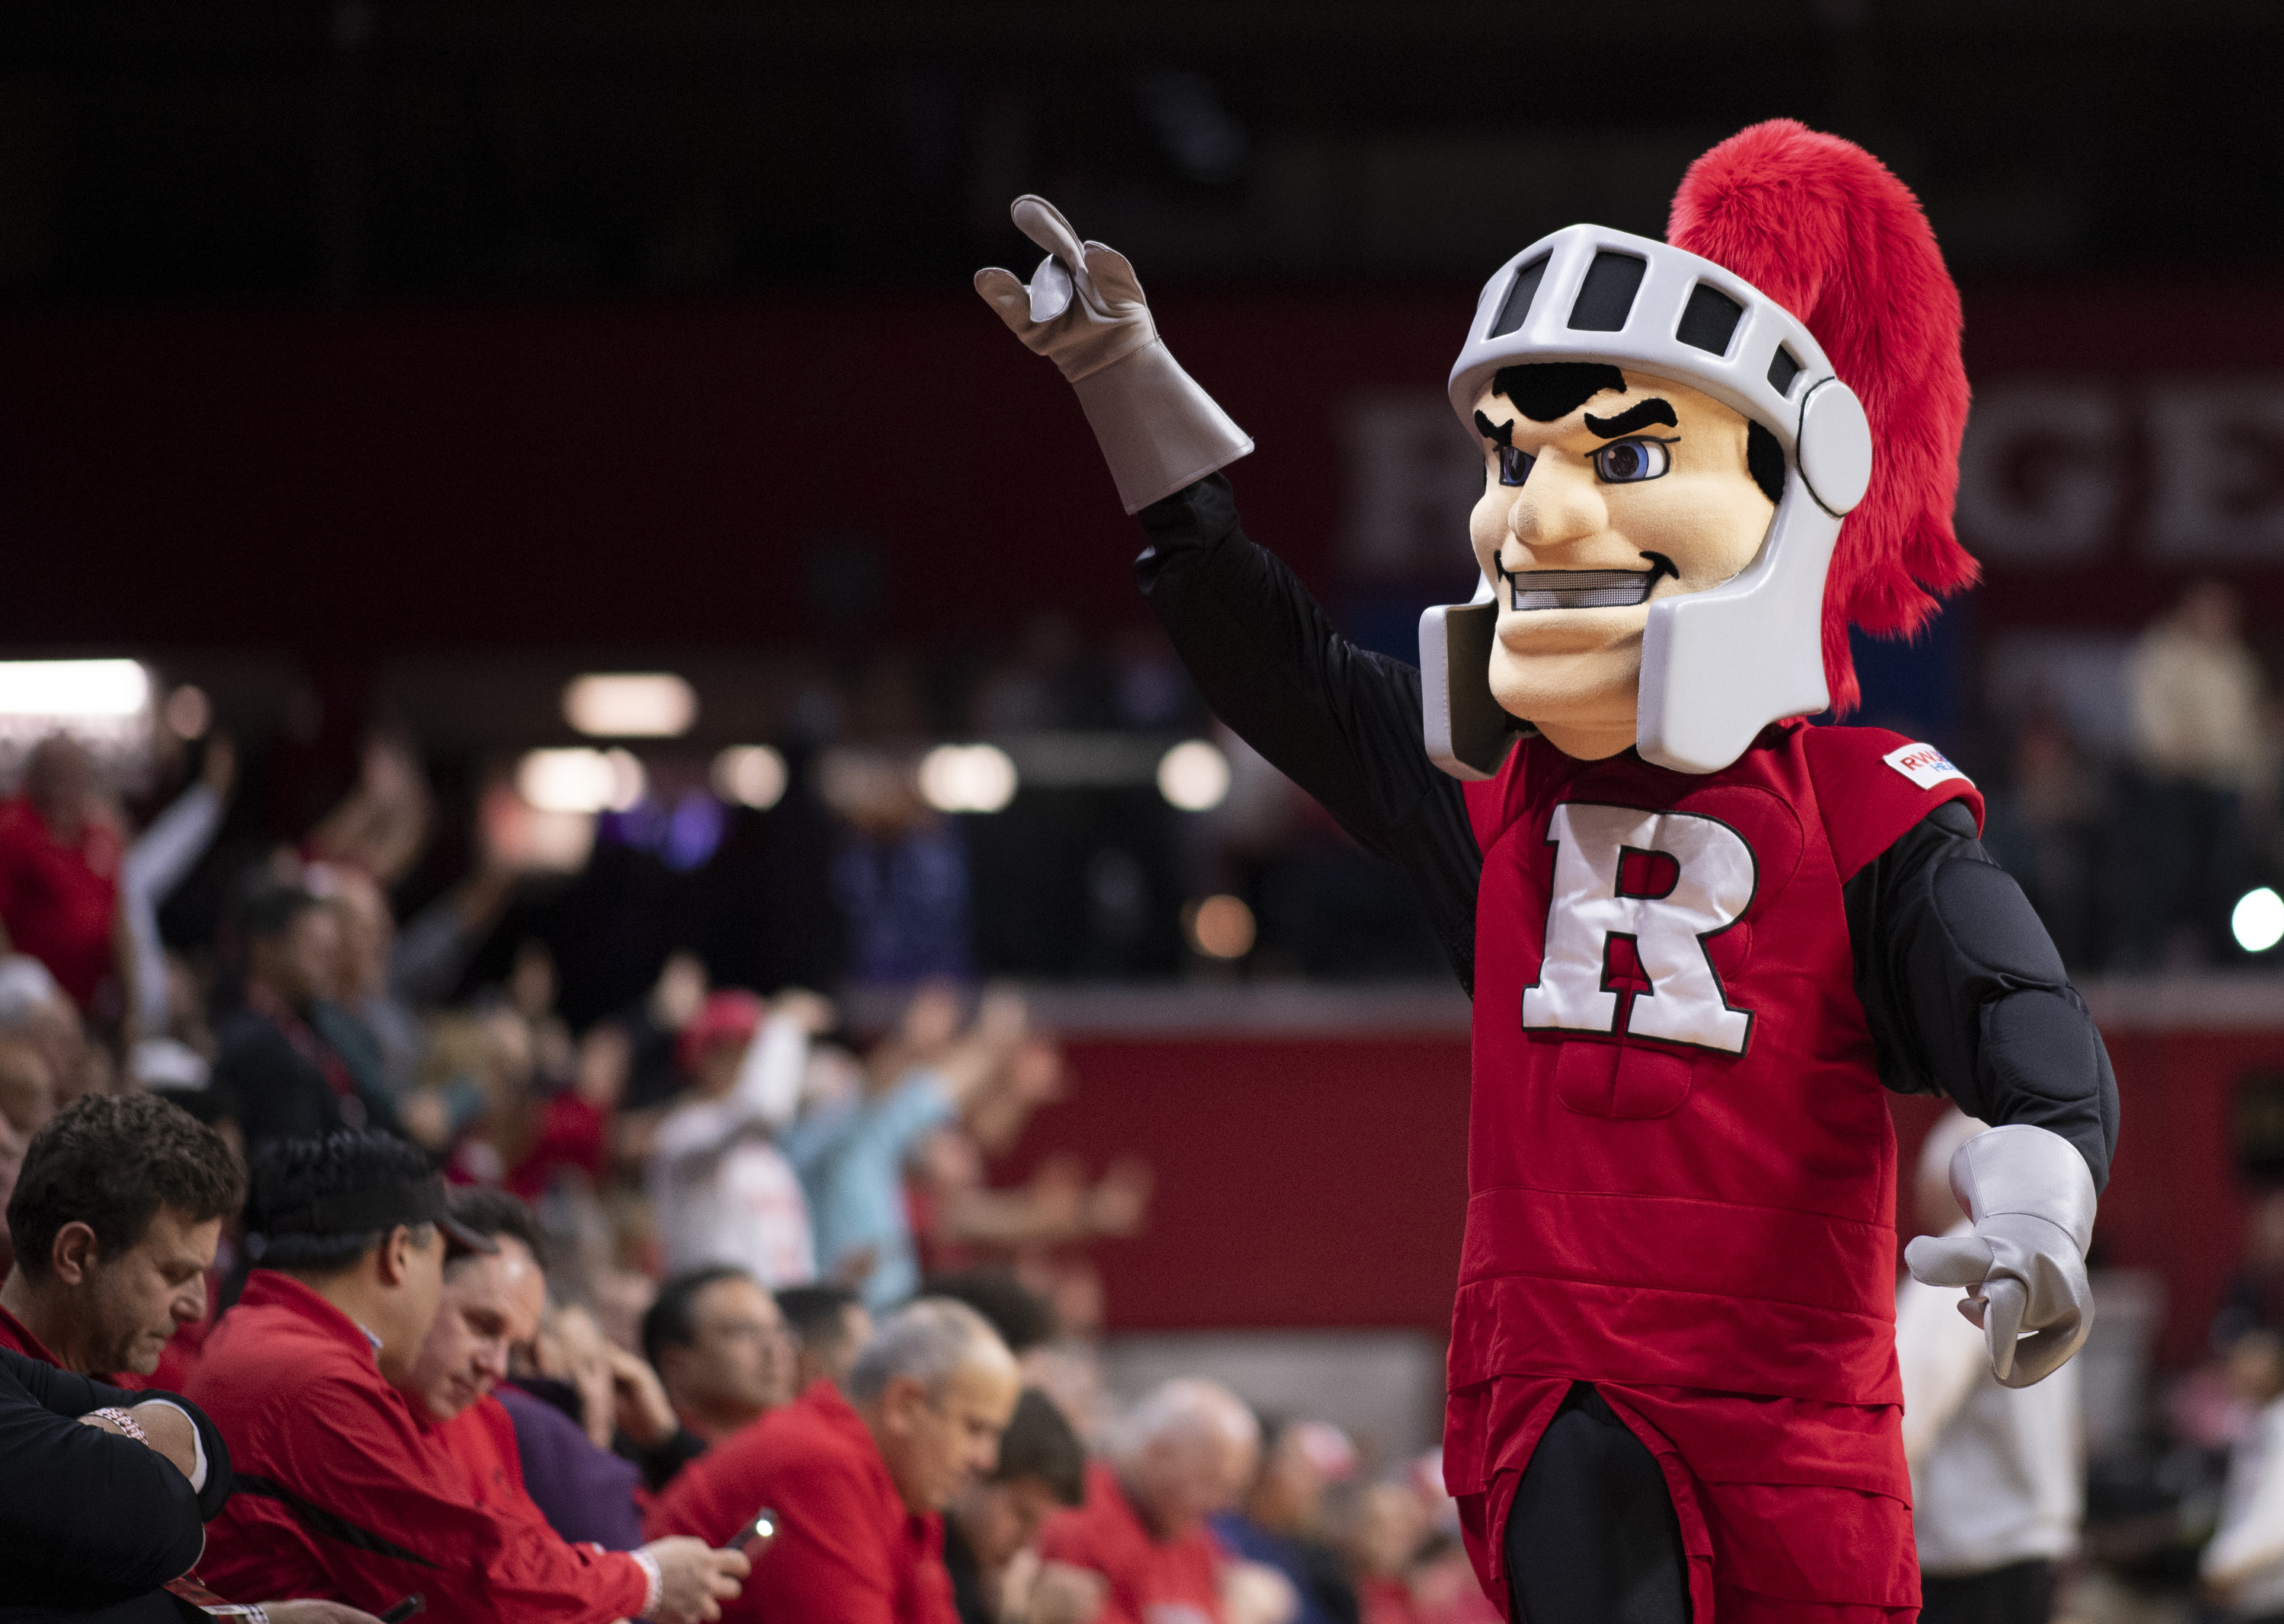 """Red-clad knight mascot with a big """"R"""" on his outfit."""